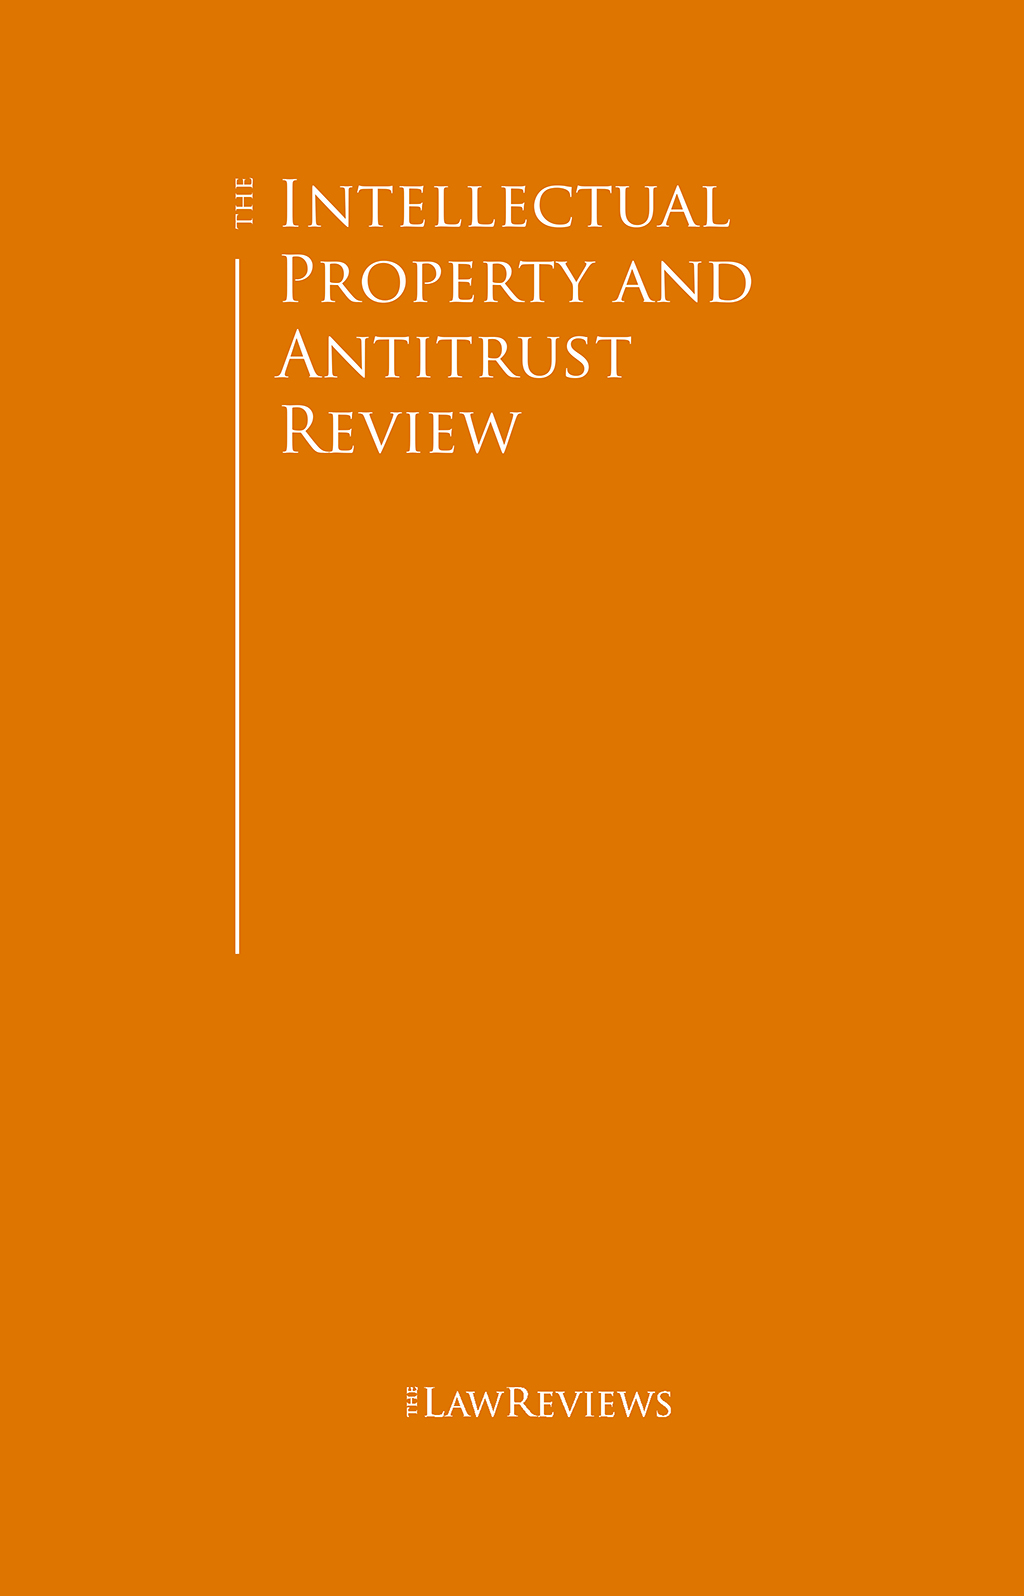 The Intellectual Property and Antitrust Review